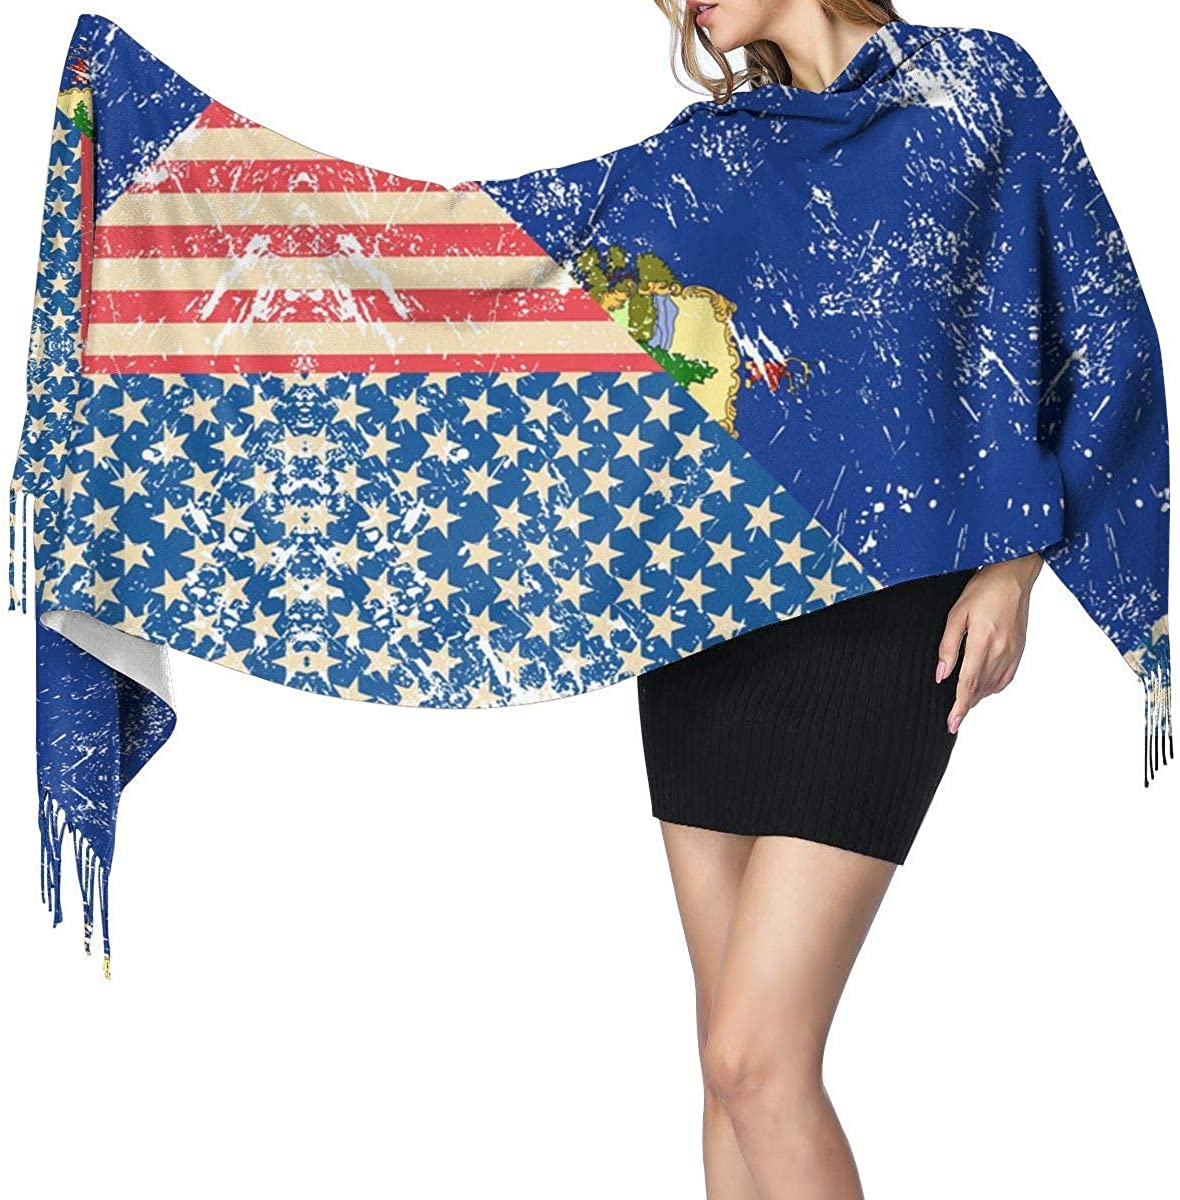 Retro USA and Vermont State Flag Cashmere Scarf Shawl Wraps Super Soft Warm Tassel Scarves For Women Office Worker Travel